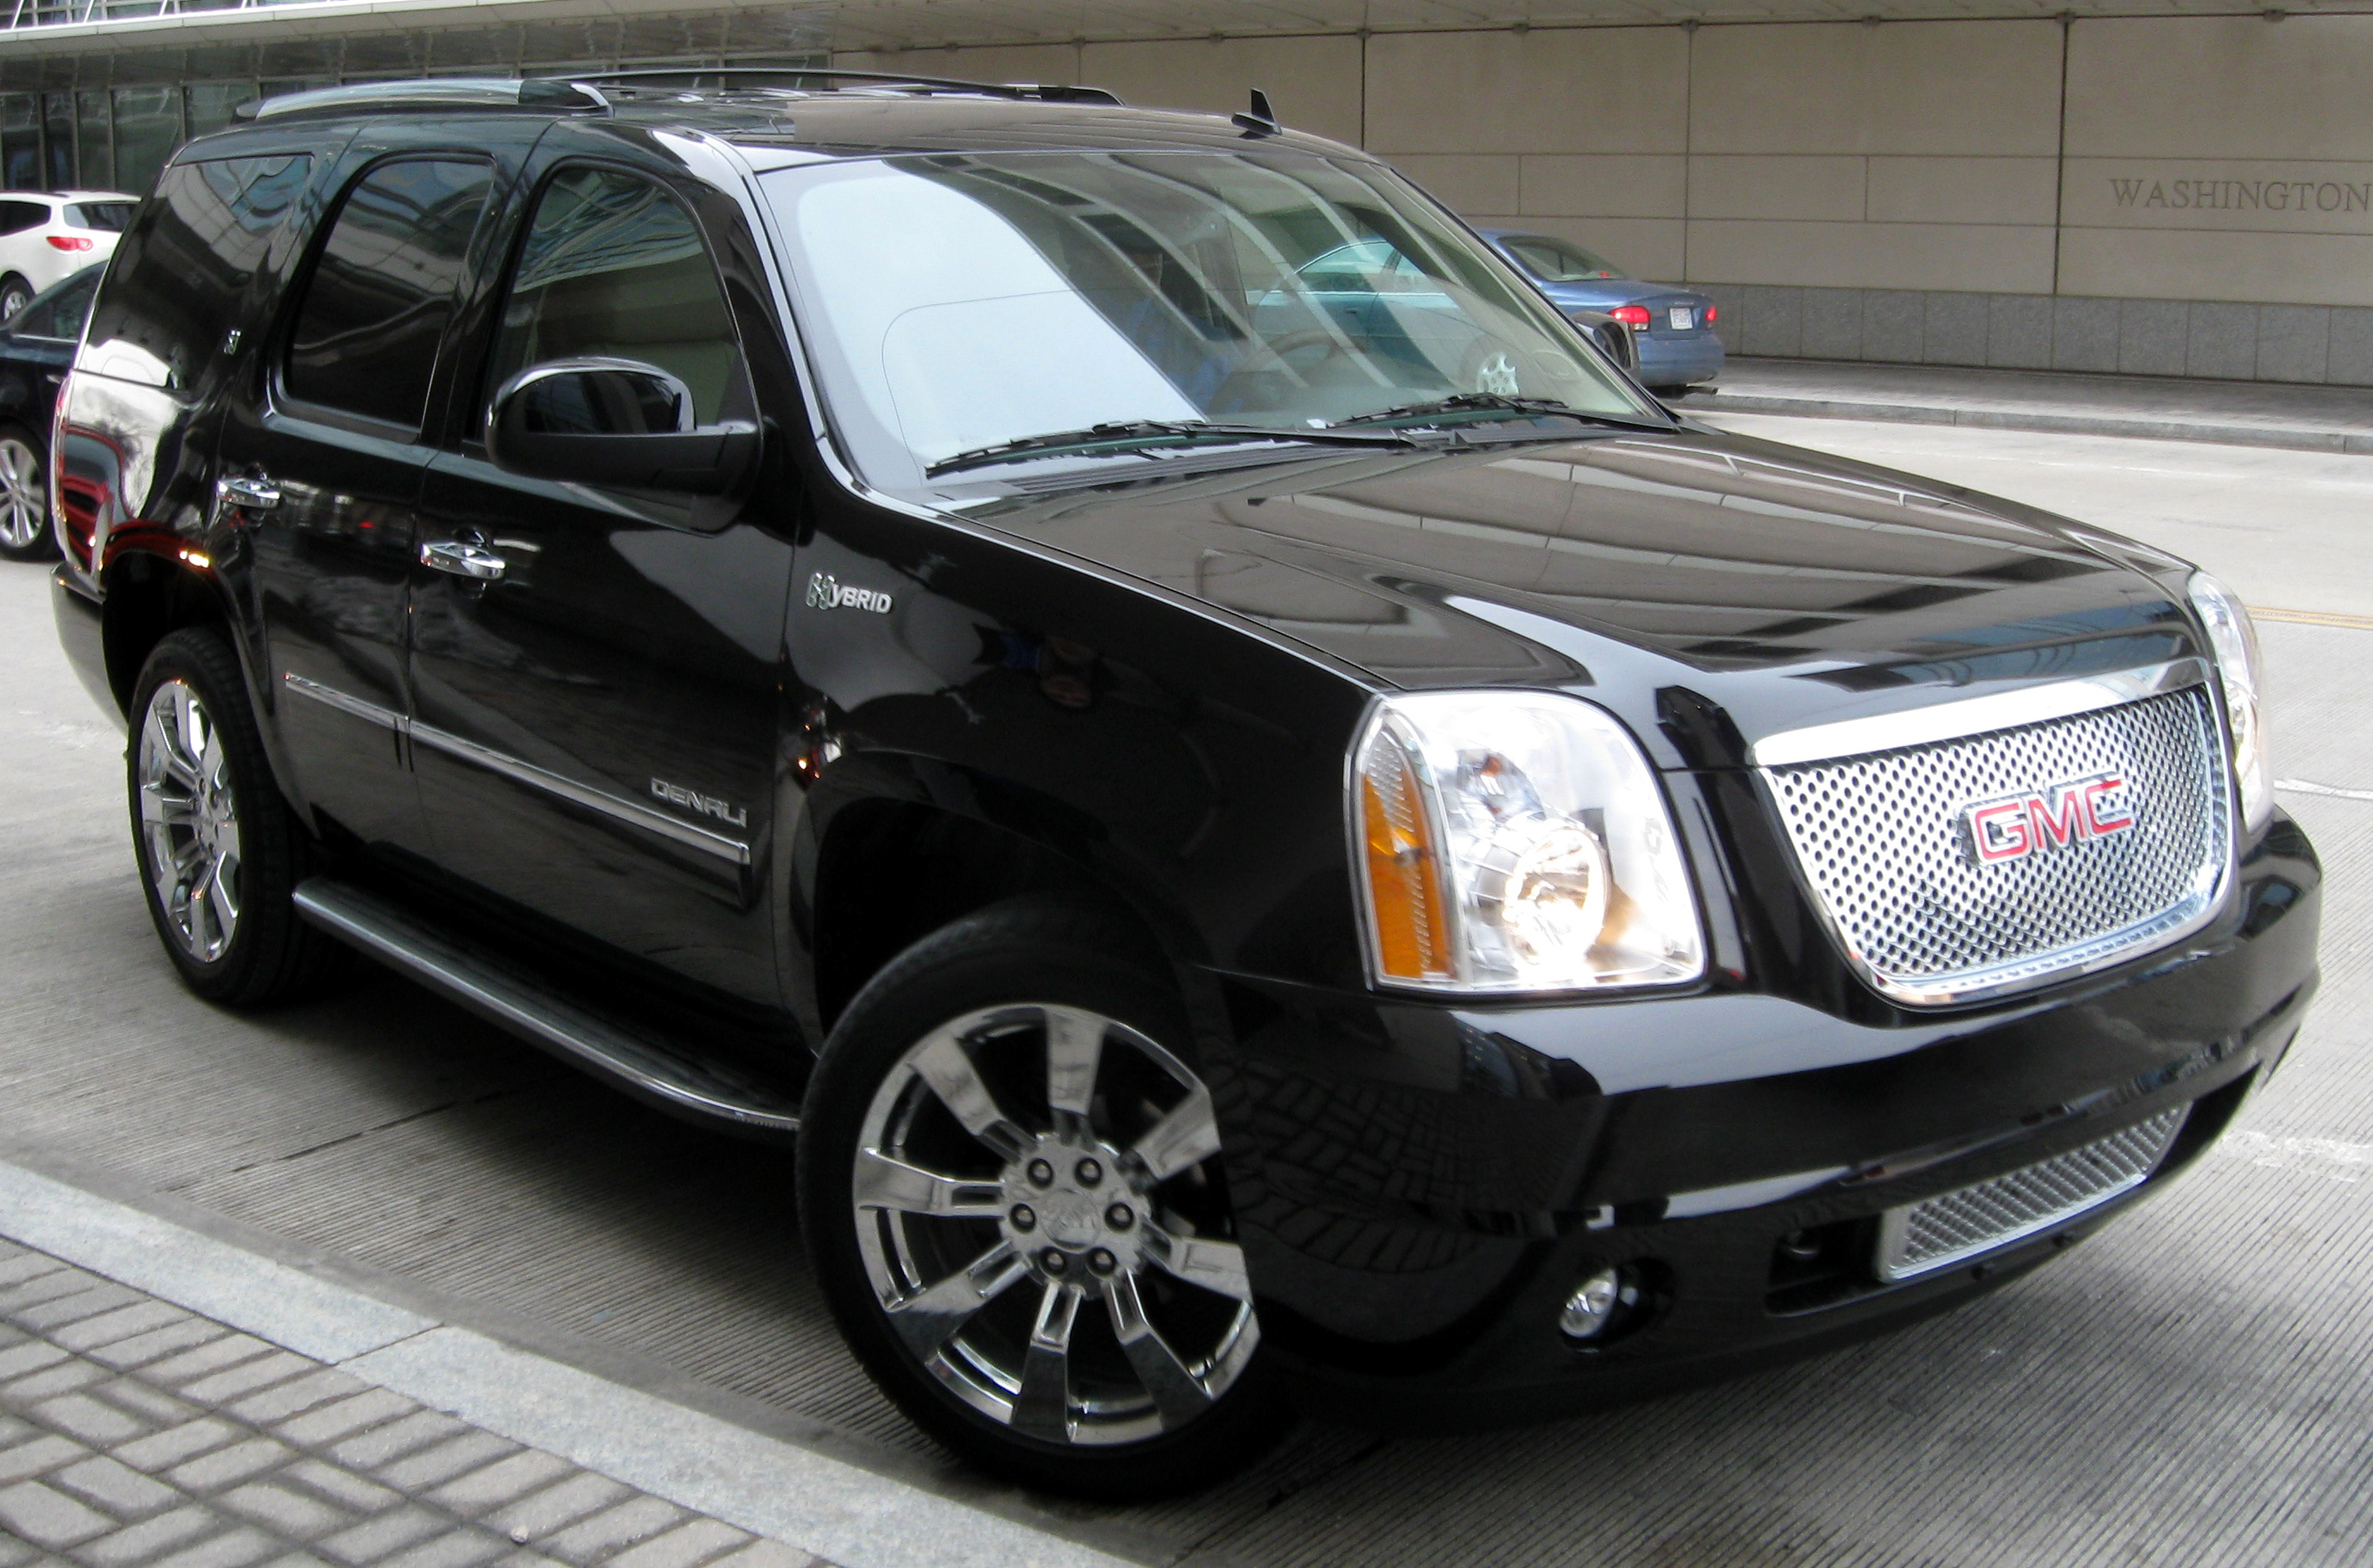 gmc yukon (gmt800) 2001 wallpaper